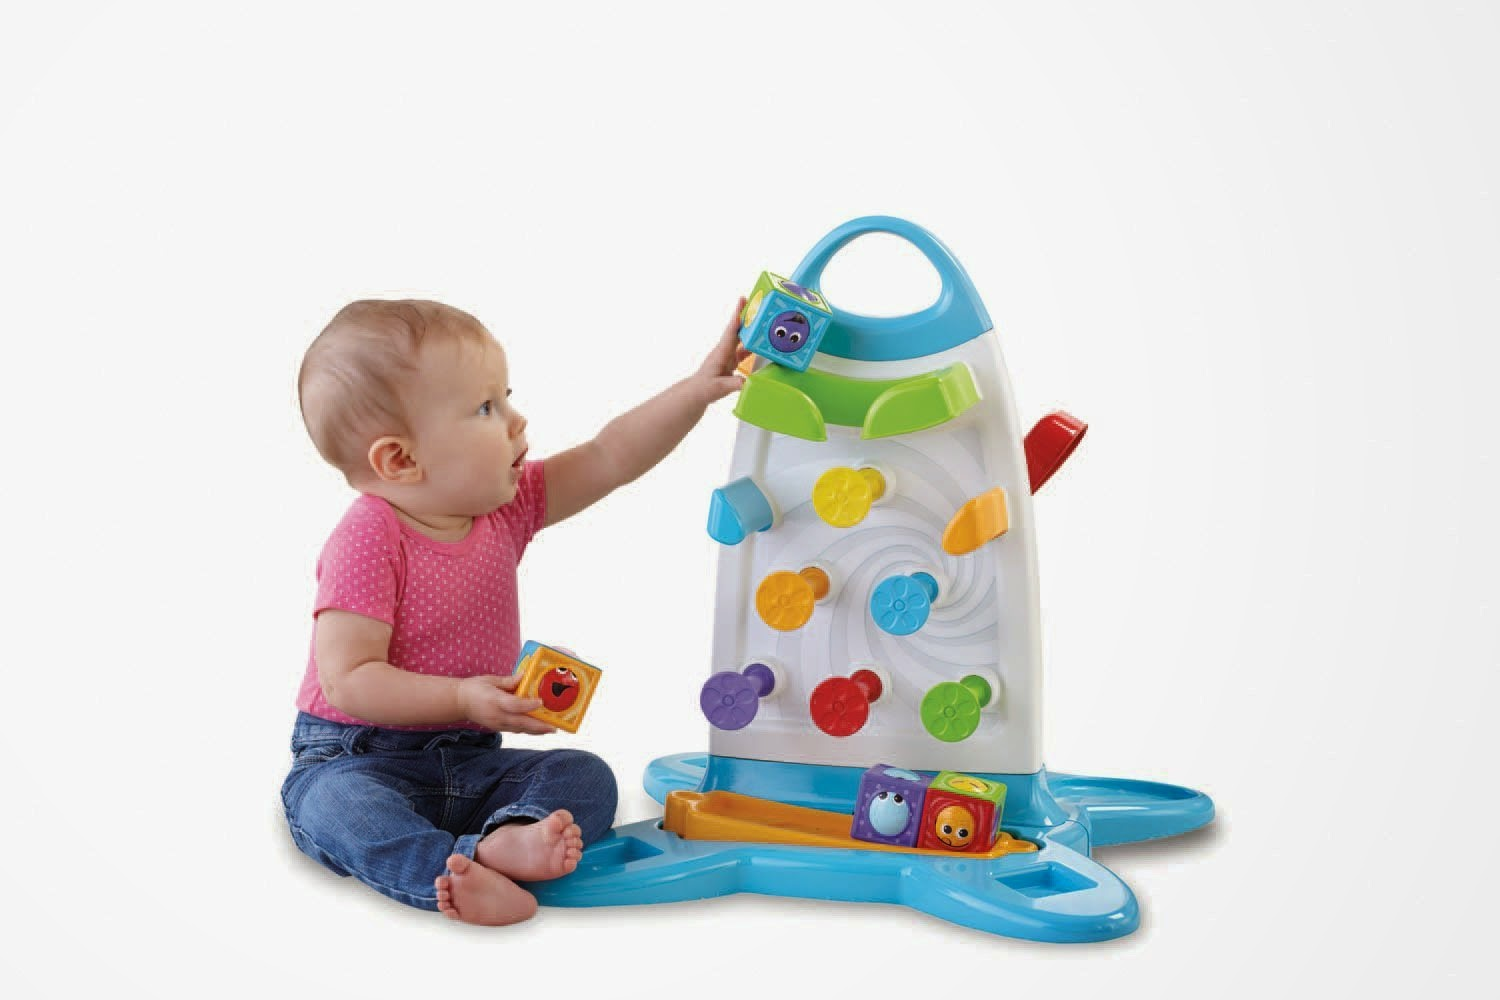 Buy Fisher Price Roller Blocks Play Wall Rs. 1815 only at Amazon.